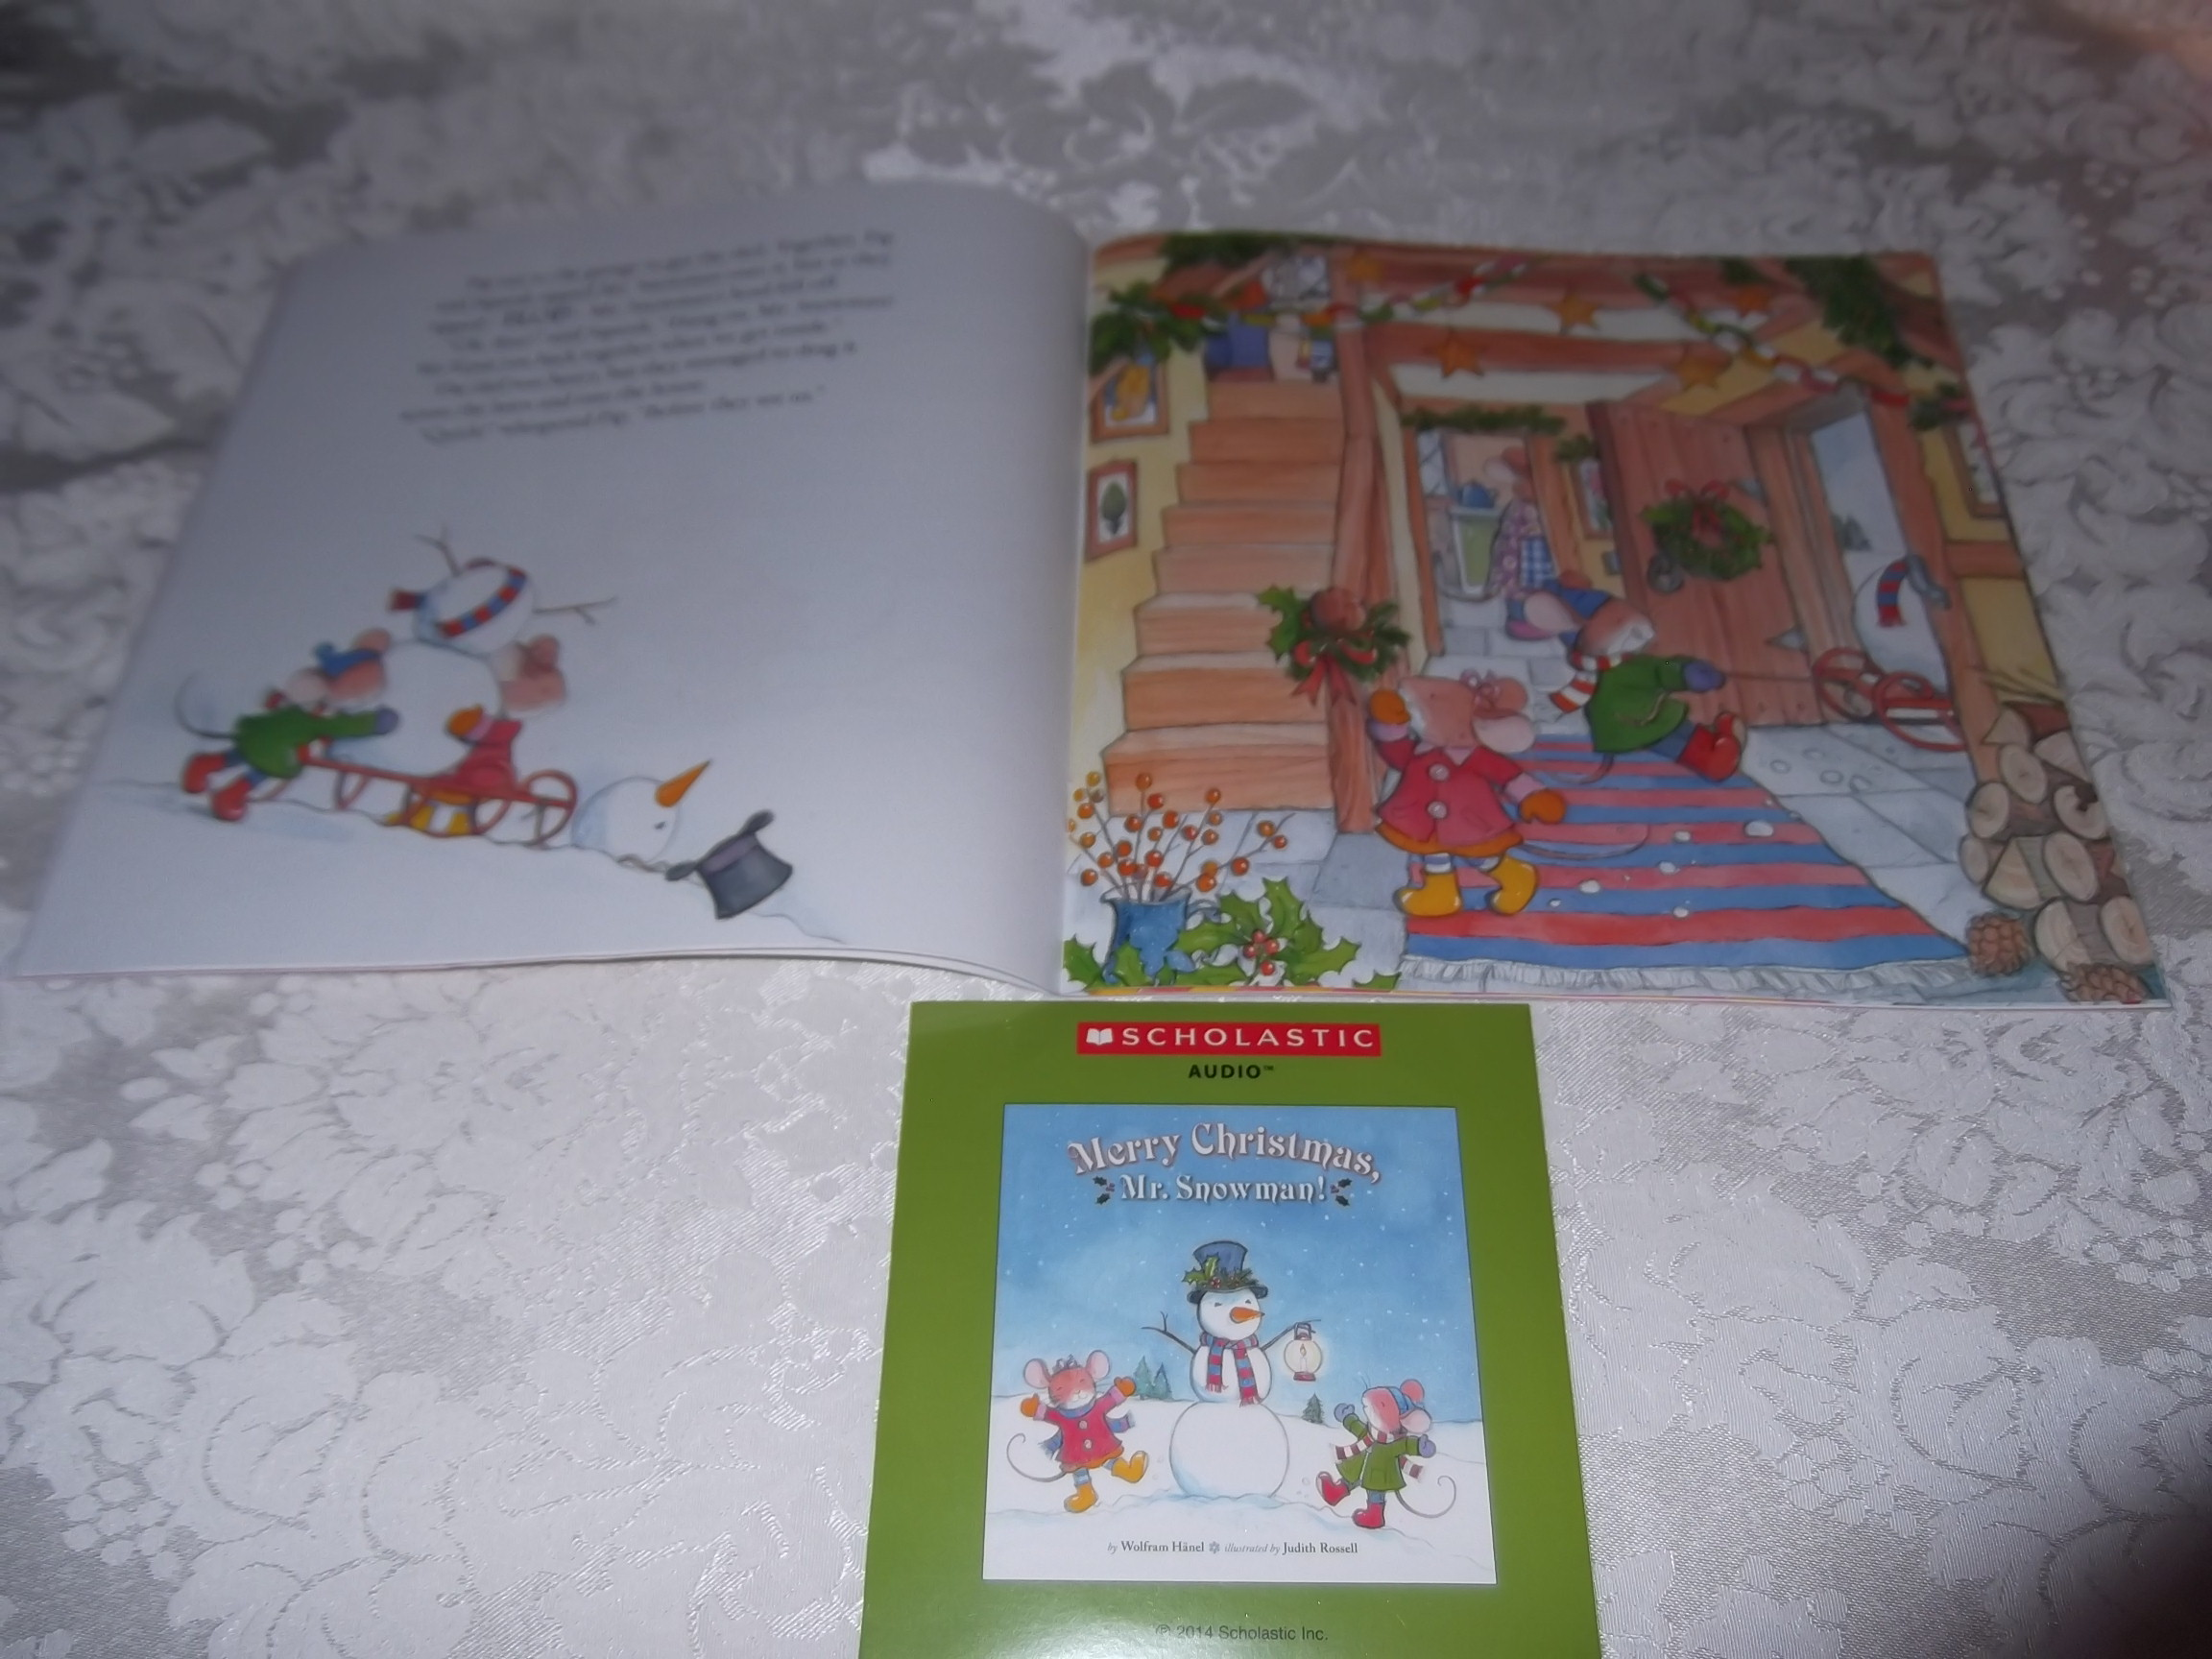 Image 3 of Merry Christmas, Mr. Snowman! Wolfram Hanel Audio CD and SC Brand New